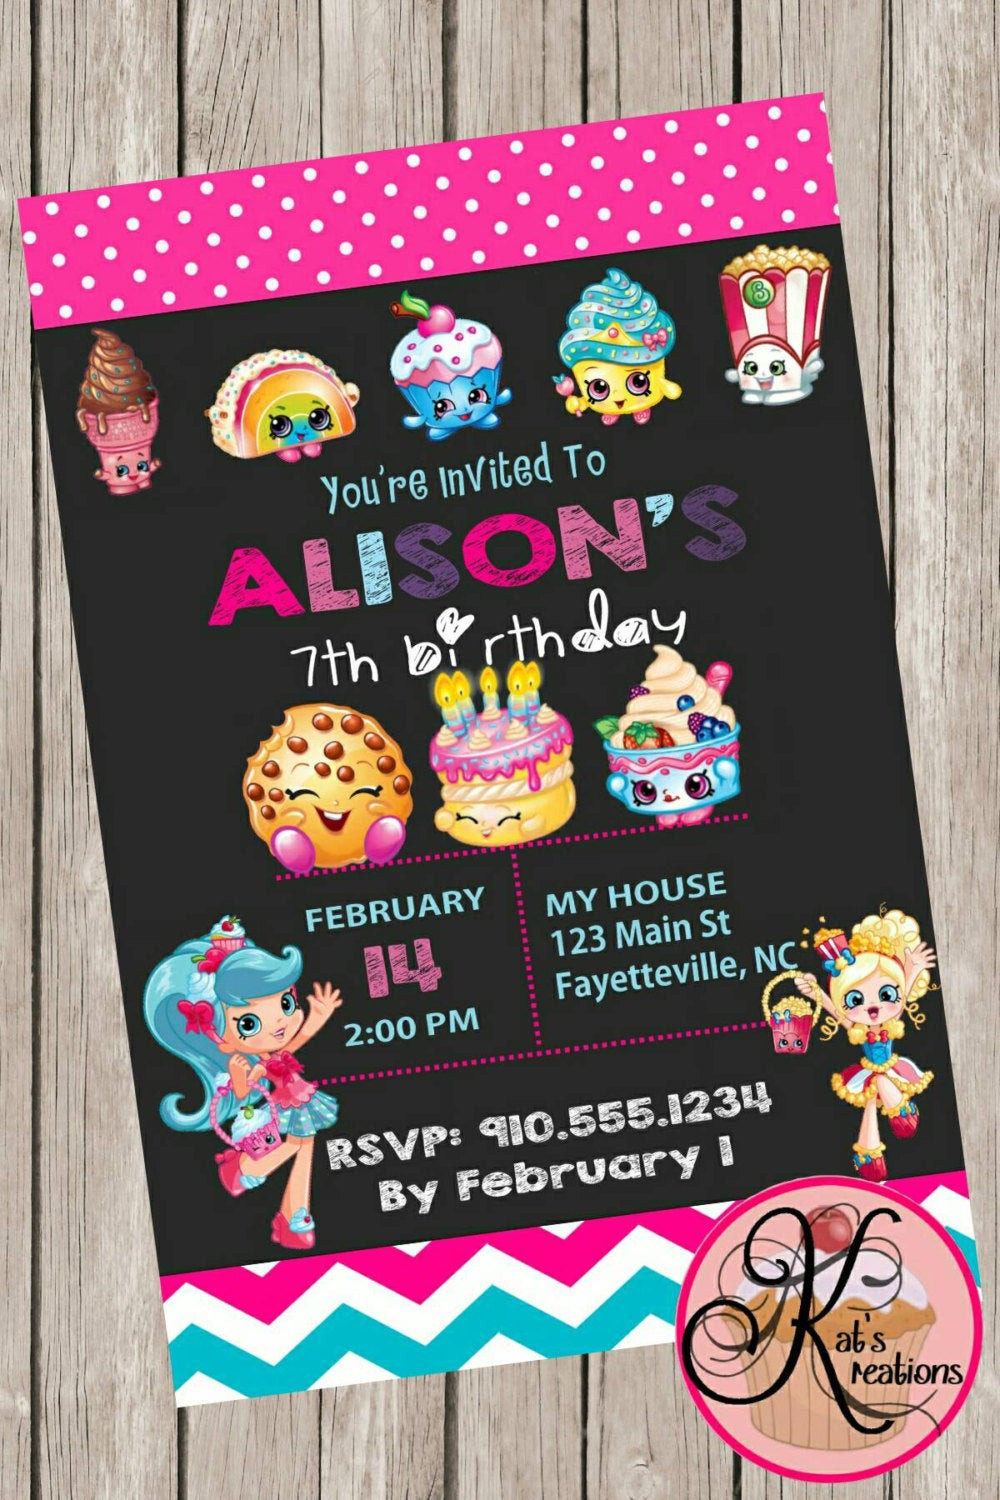 Shopkins Birthday Party Invitations Fresh Shopkins Birthday Party Printable Invitation By KatsKreations3